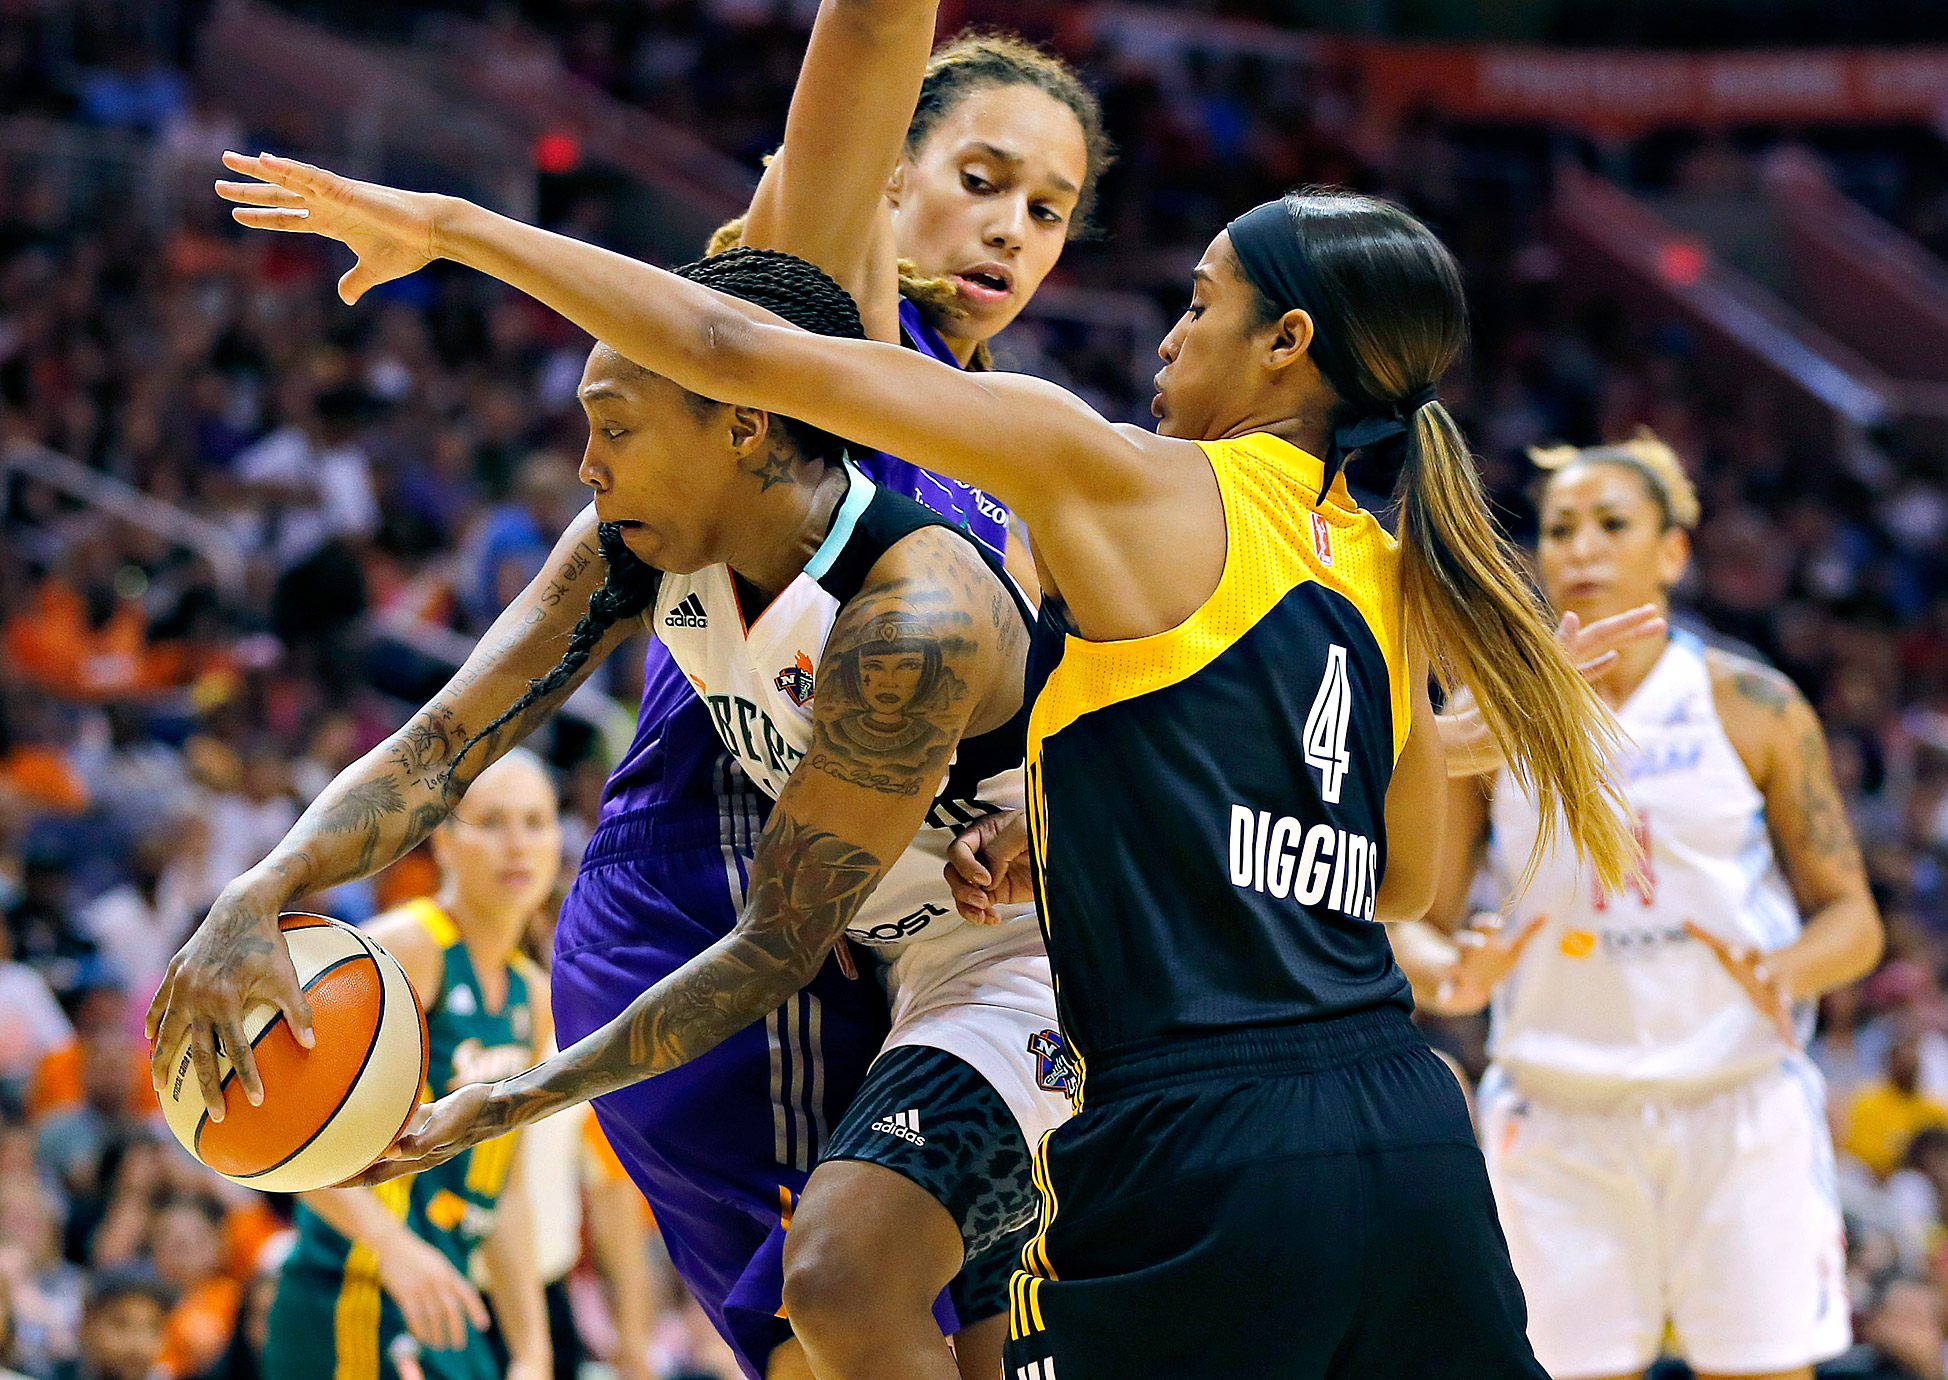 The East's Cappie Pondexter, left, passes between the West's Brittney Griner, rear, and Skylar Diggins during the second half the WNBA All-Star Game. The East won 125-124 in the first WNBA All-Star Game to go to overtime.